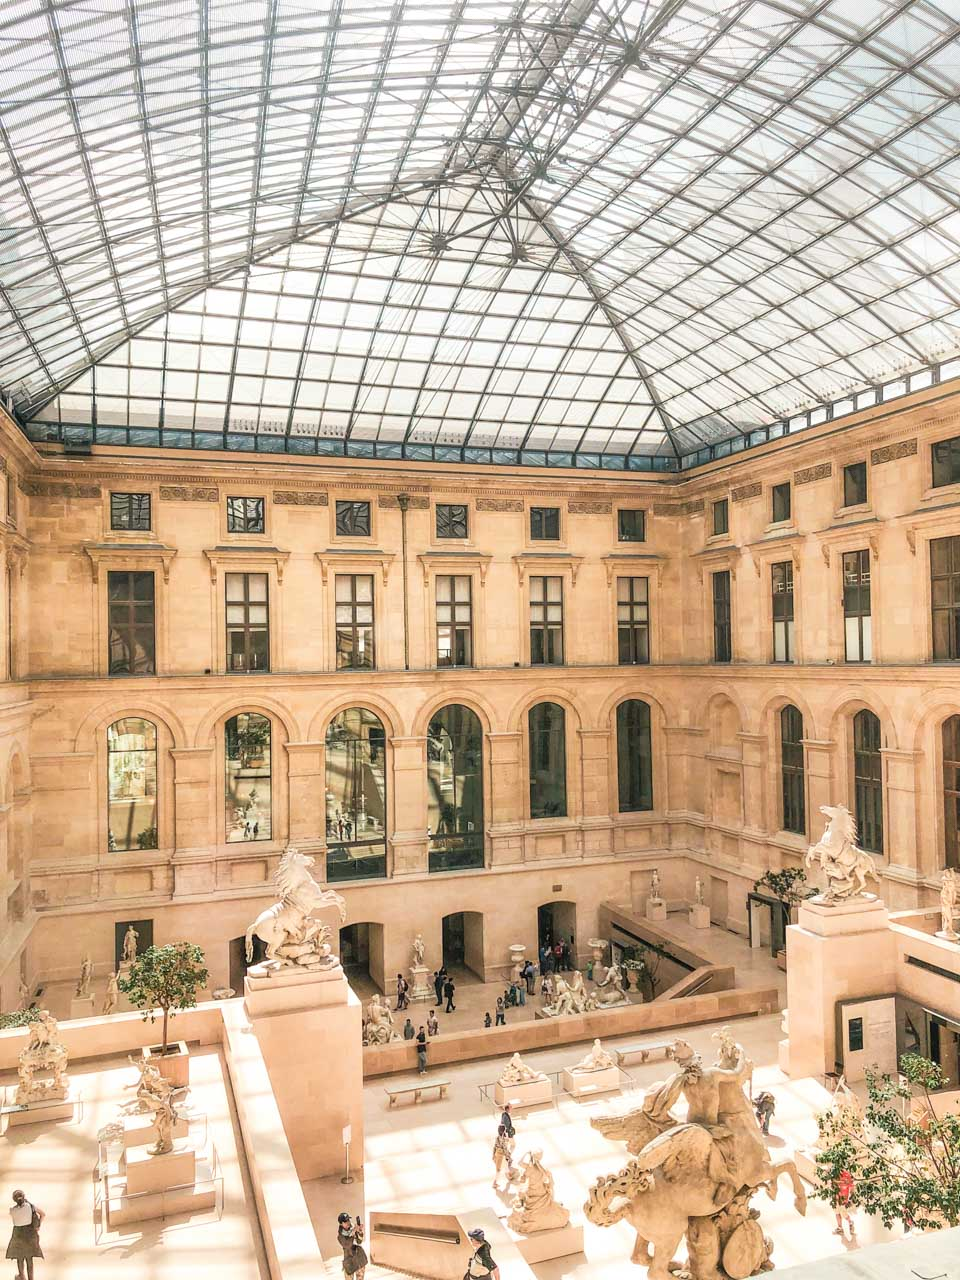 The Cour Marly sculpture courtyard in the Louvre Museum in Paris, France